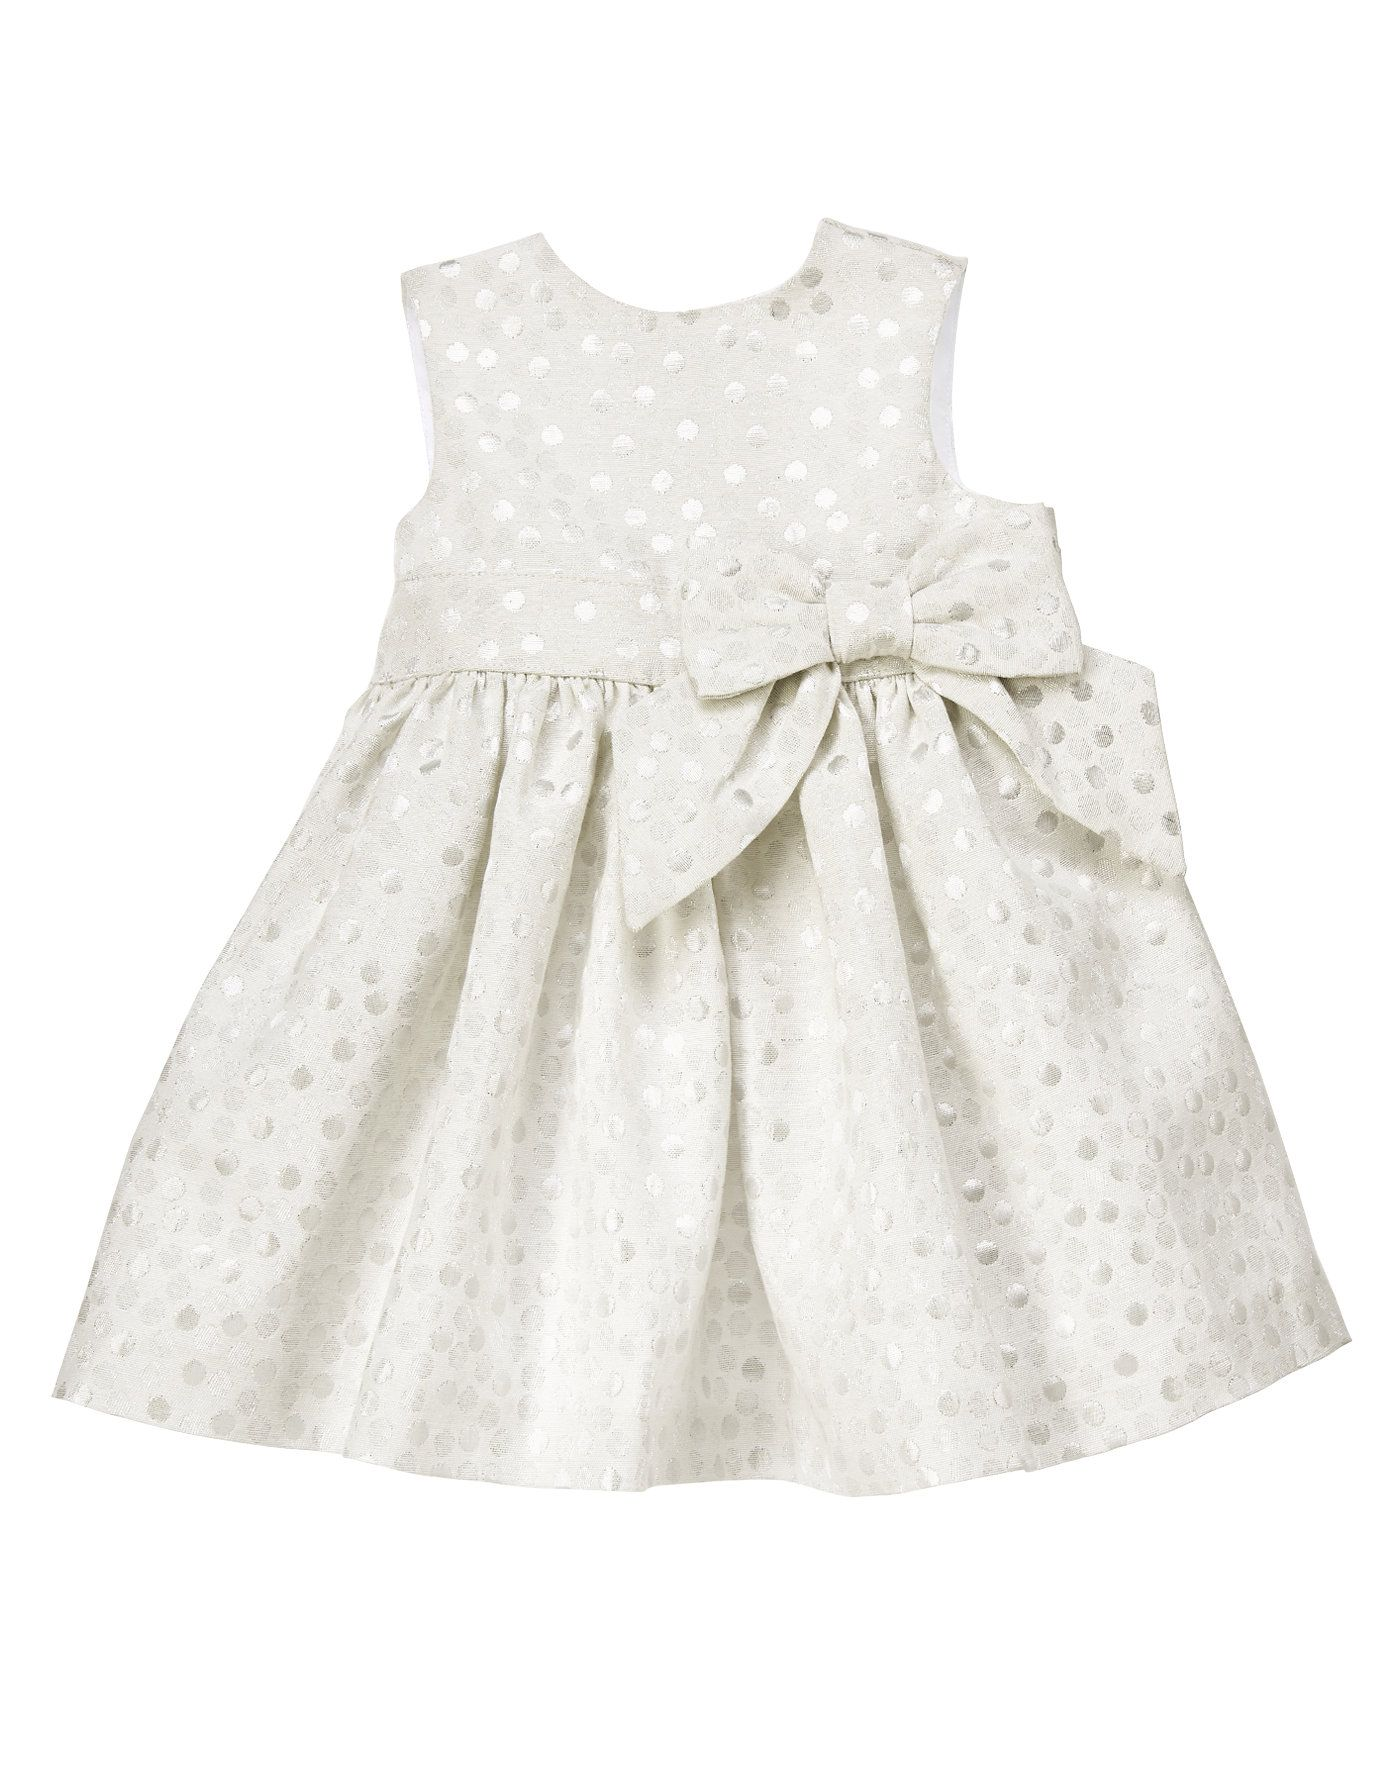 Fancy brocade dress with sparkly dots and a sweet sash